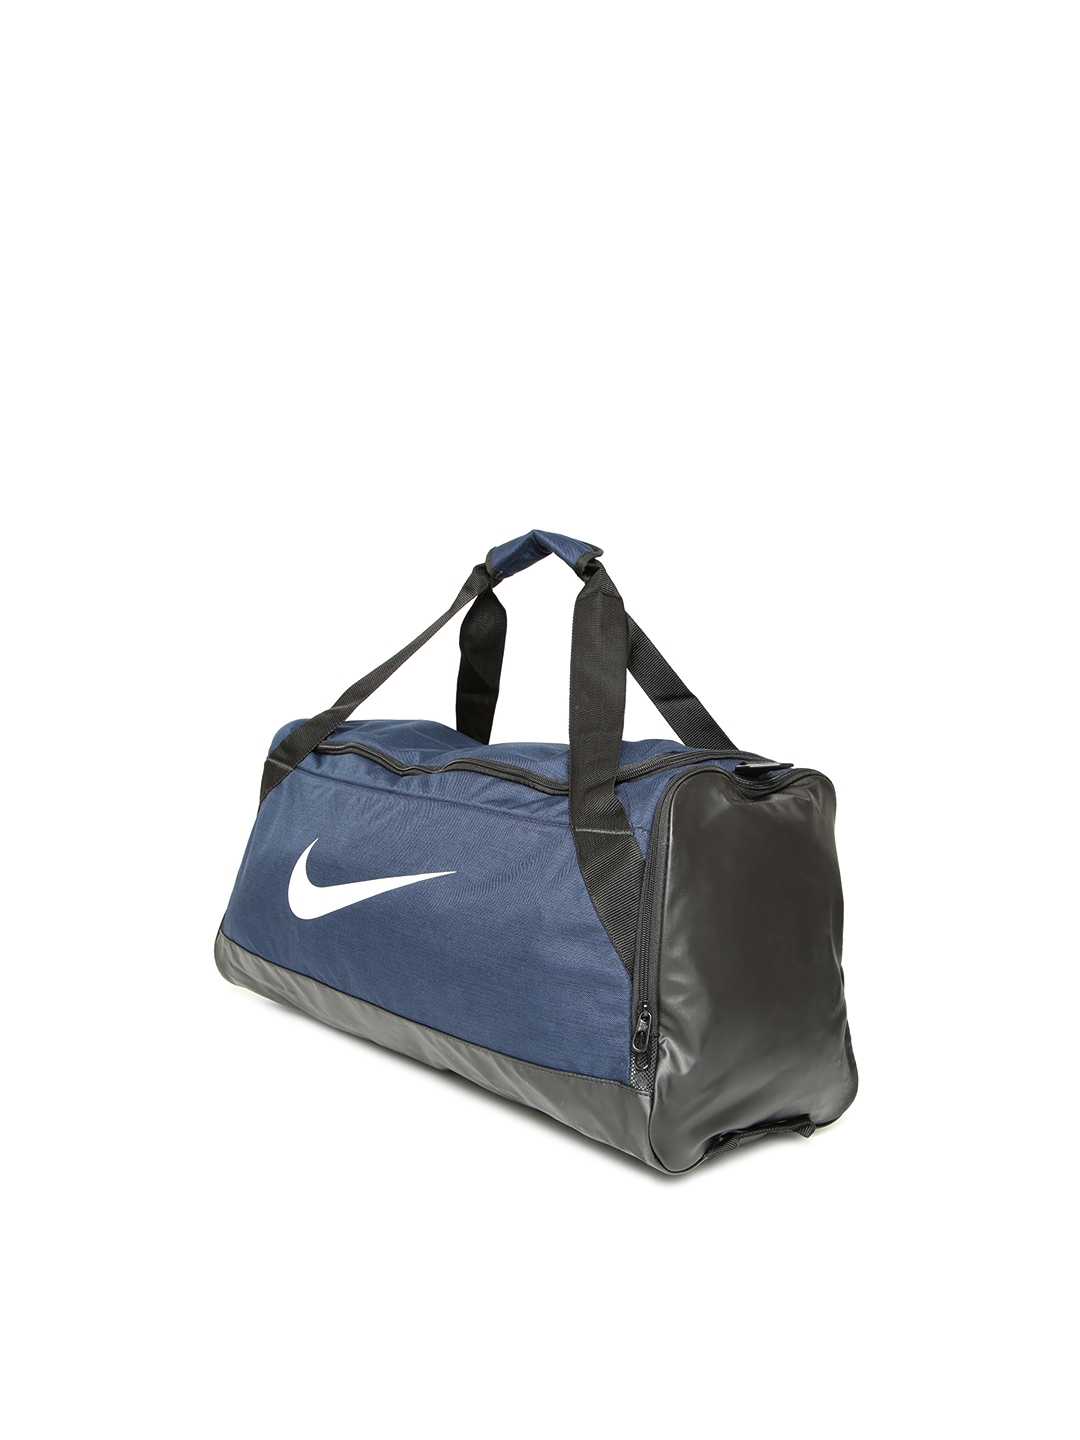 Buy Nike Unisex Navy BRSLA M Training Duffel Bag - Duffel Bag for ... 76d19a42f256b